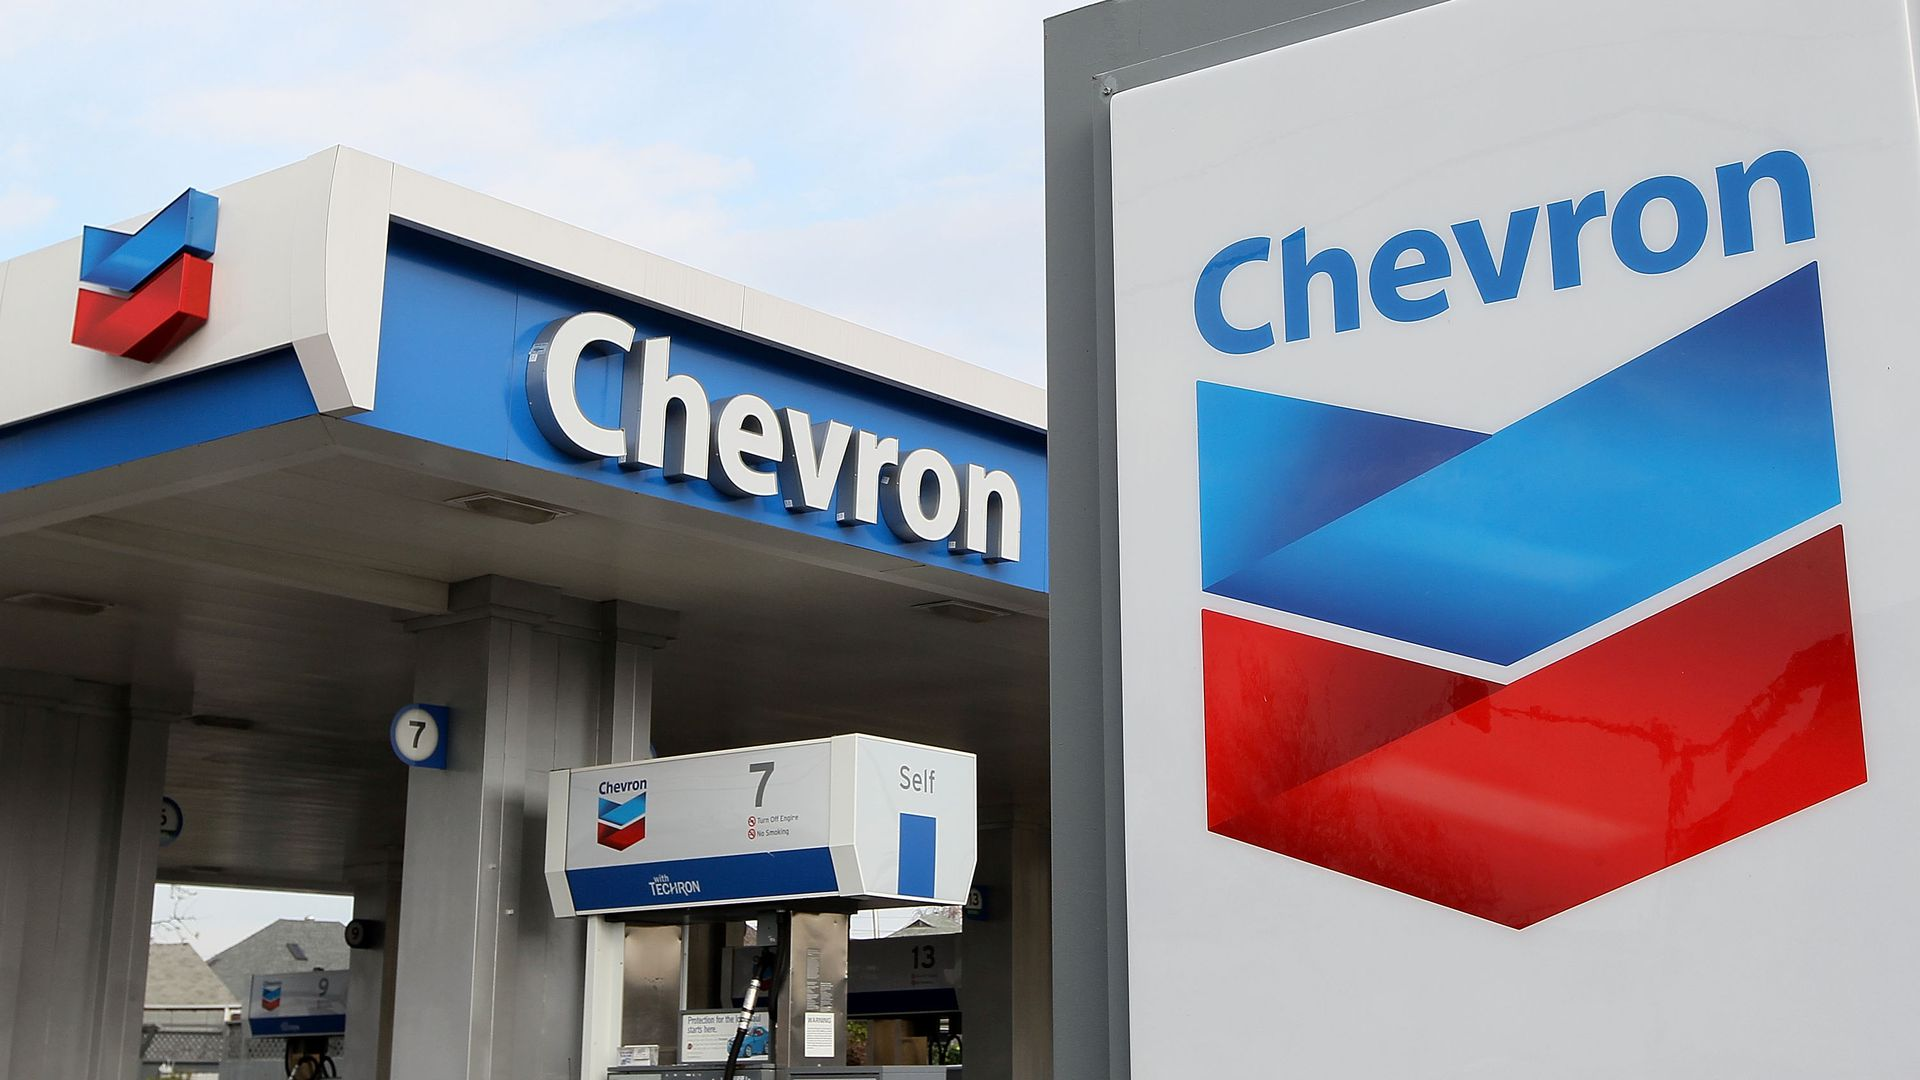 For The Development of Crude Oil Port, Companies Are Dealing with Chevron